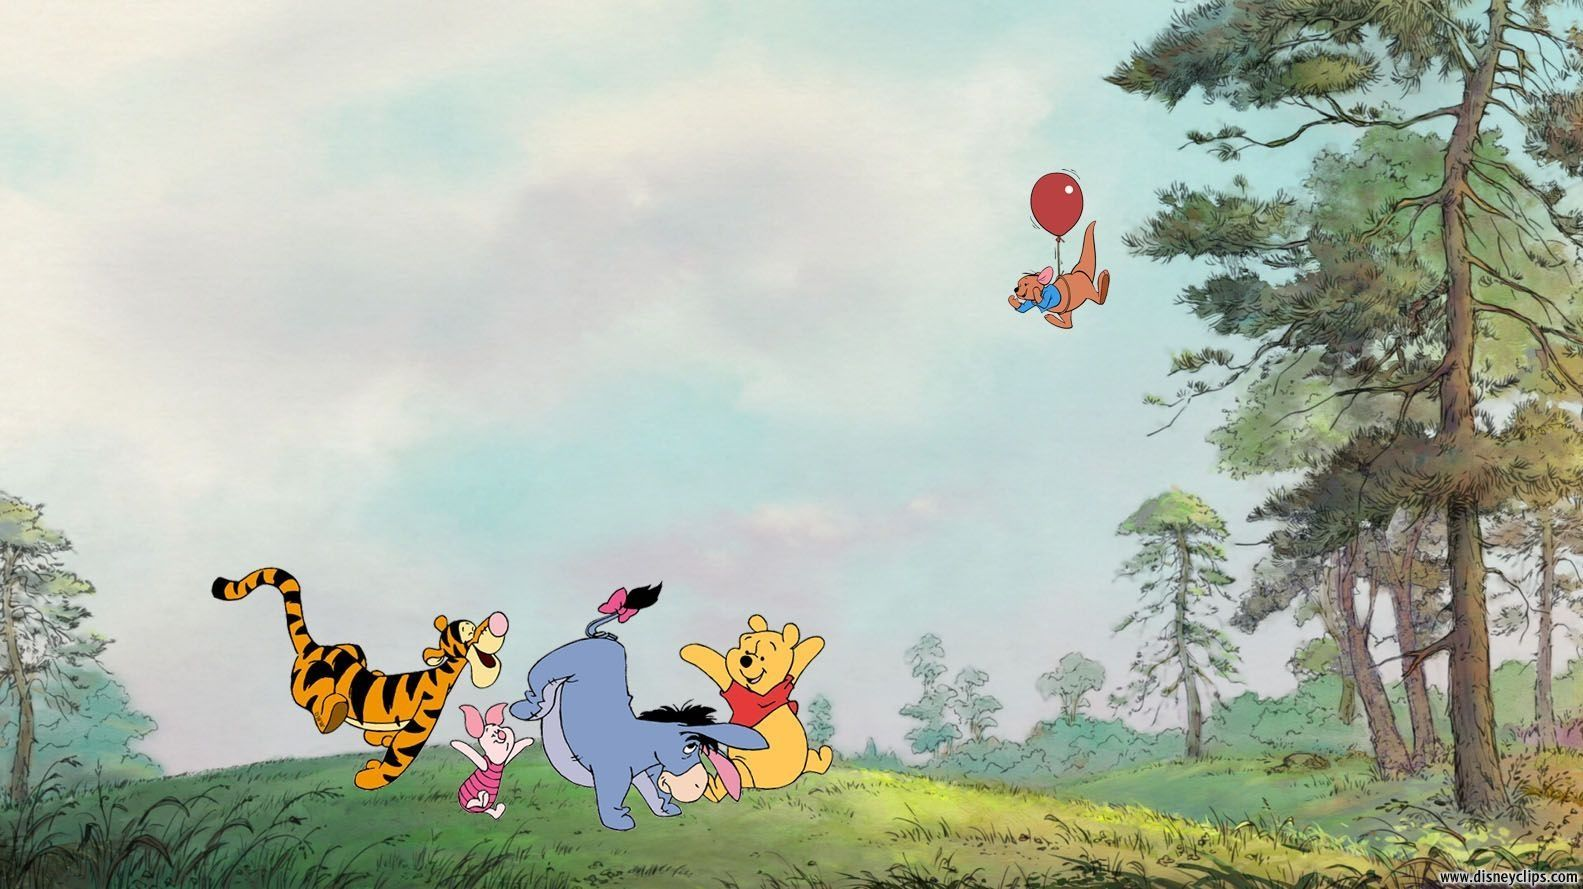 Winnie The Pooh Desktop Wallpapers Top Free Winnie The Regarding The Most Awesom In 2020 Disney Desktop Wallpaper Disney Wallpaper Cartoon Wallpaper